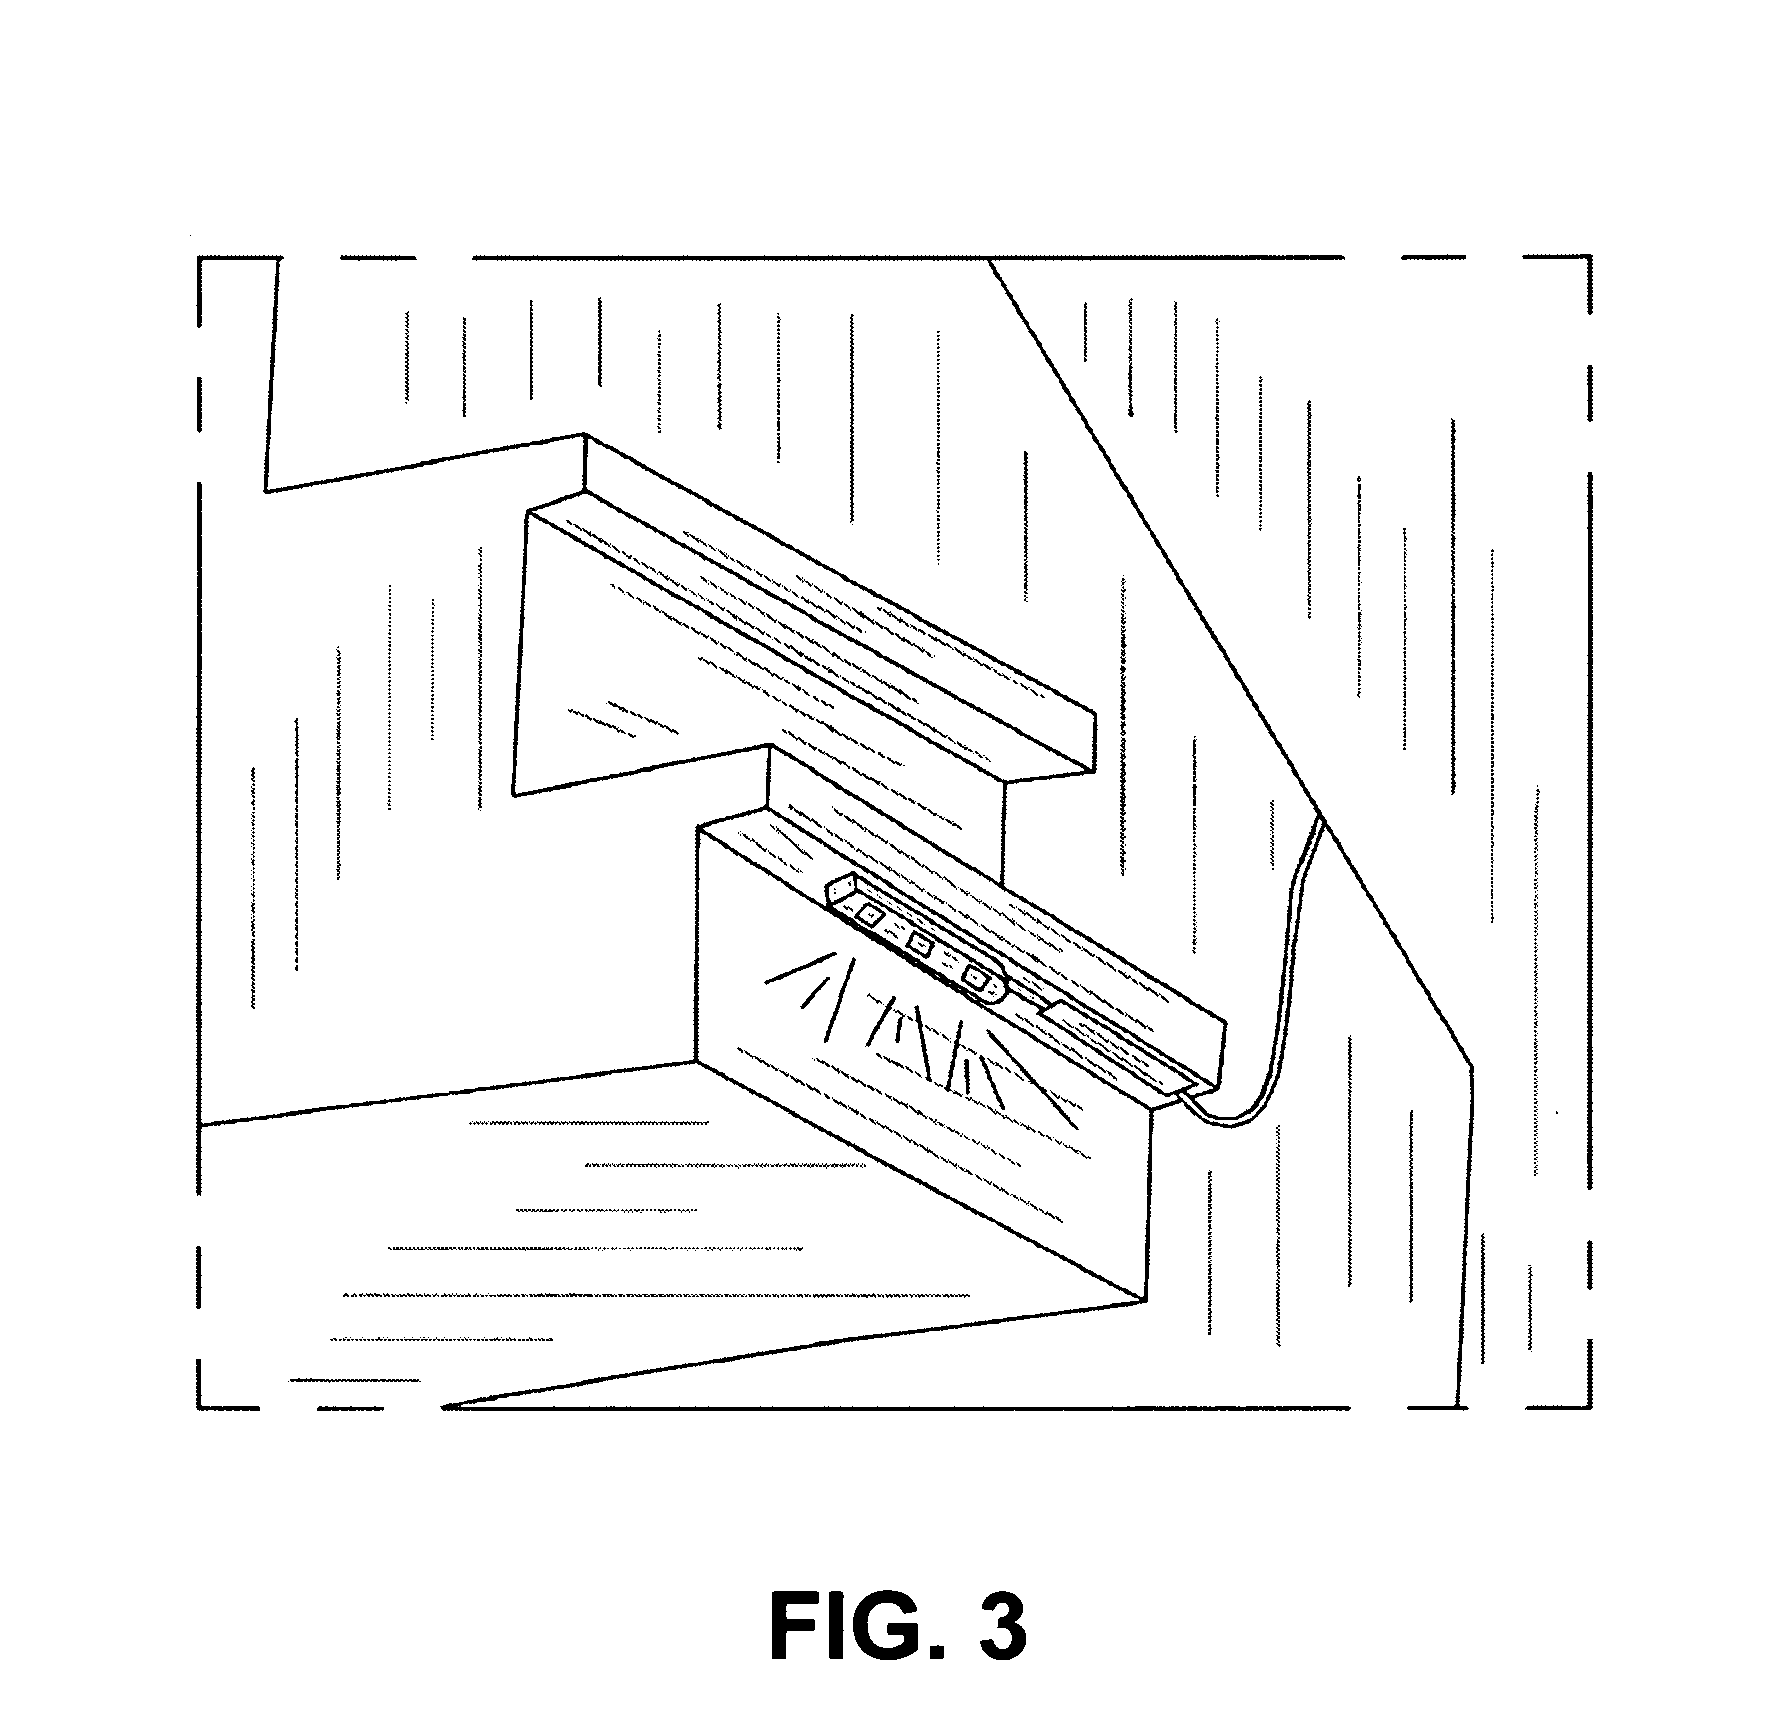 hight resolution of patent us7954973 stair lighting system and method for its strip lighting google patents on wiring led light strips in parallel